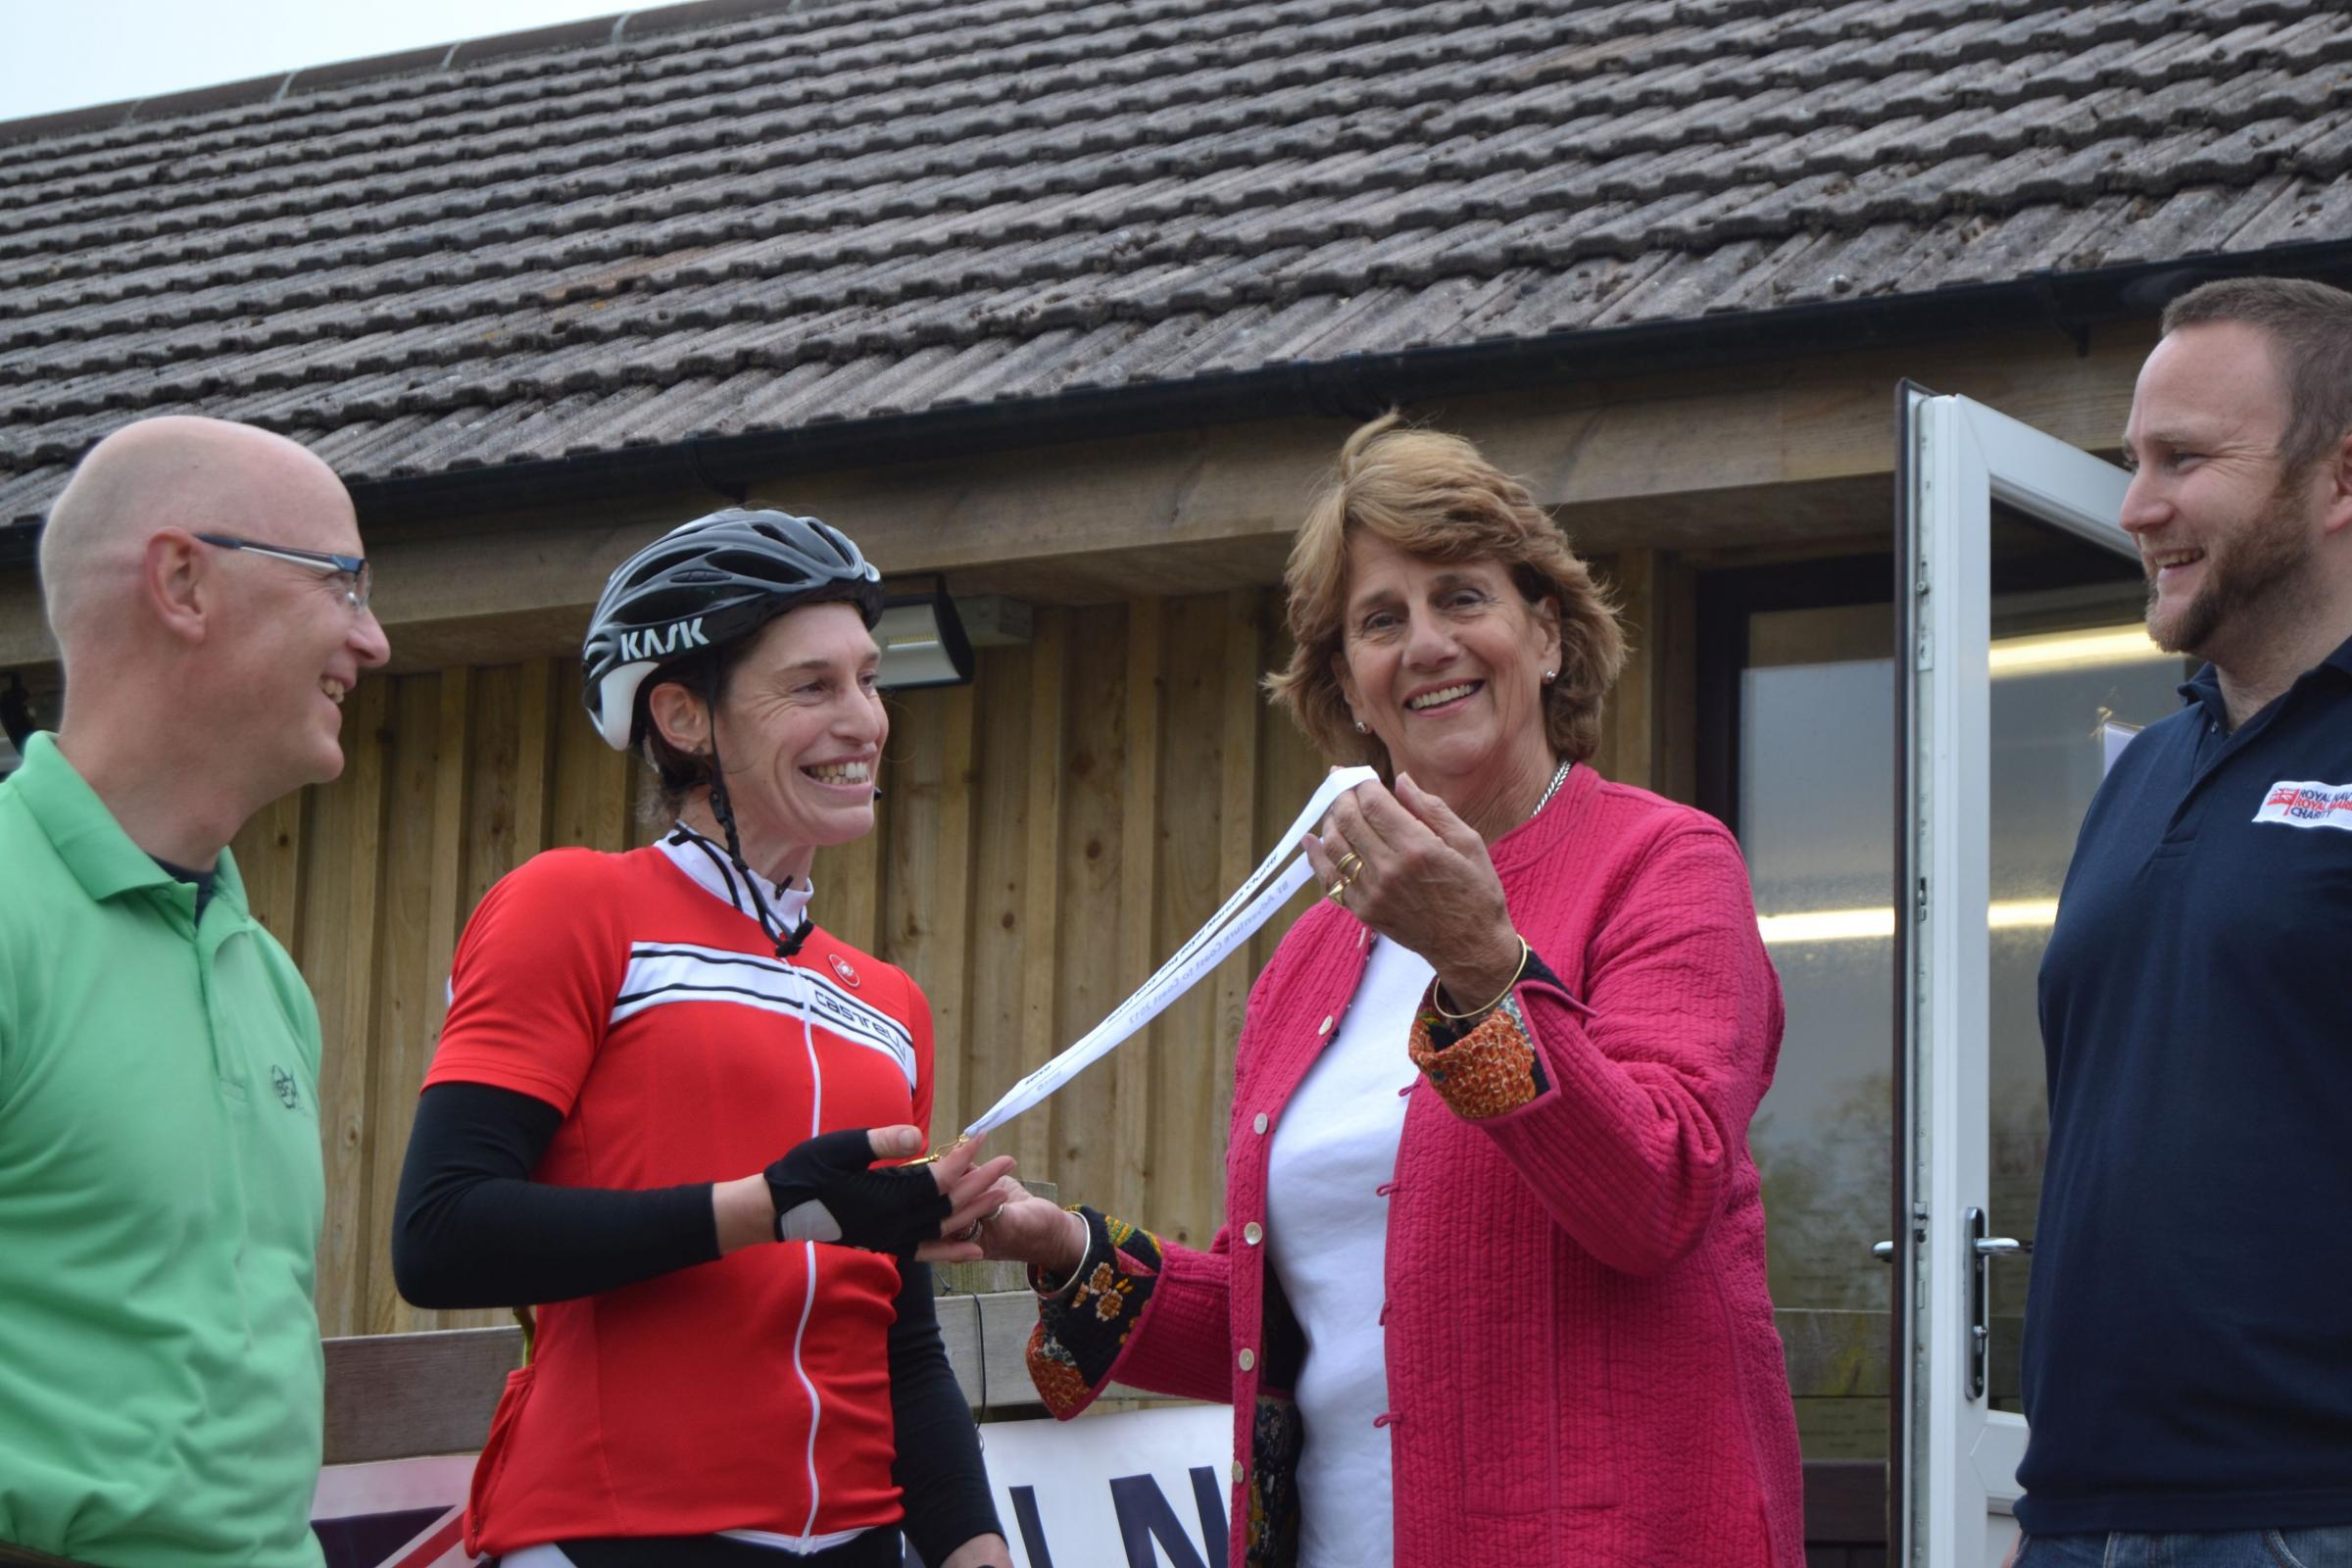 Sarah Coryton, High Sheriff of Cornwall, presents a finishers medal to Keren Spear of Falmouth. Photo: Jess Beckham